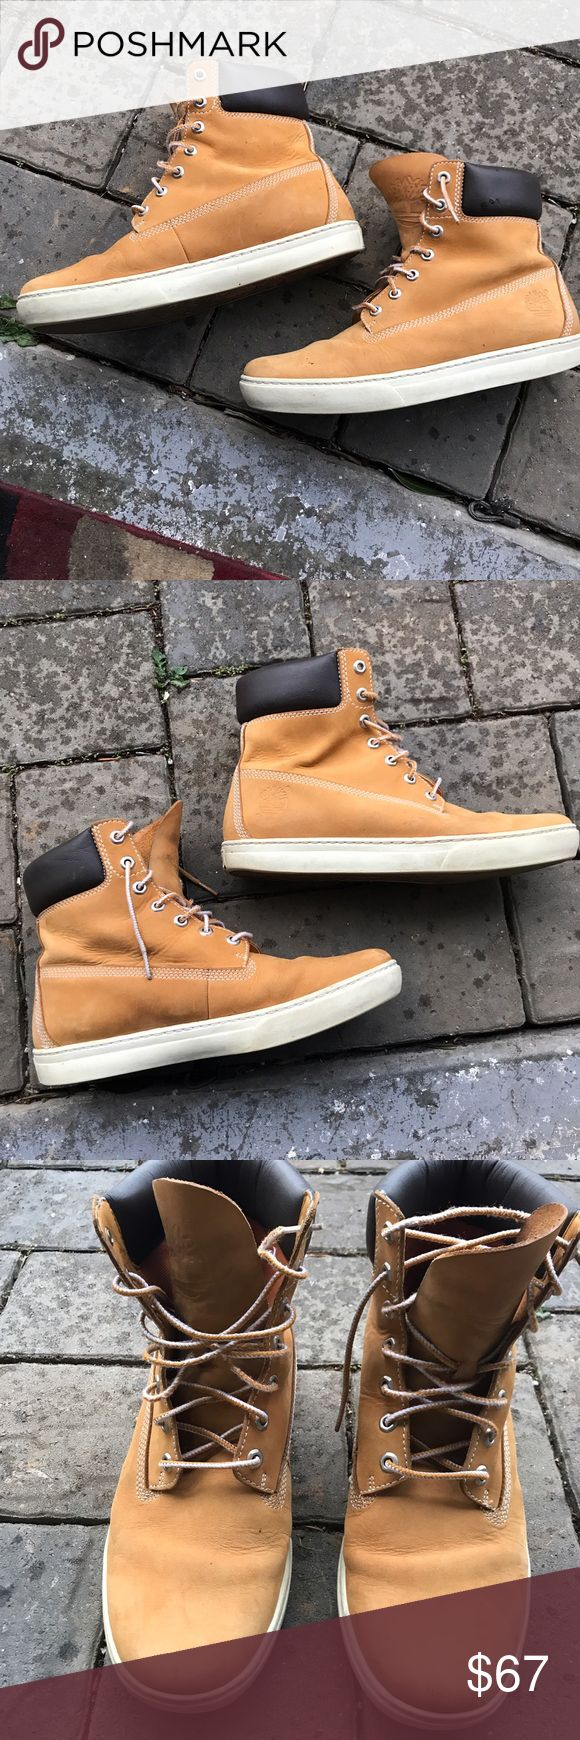 Fair condition Timberland Earthkeepers Fair condition size 10, Timberland Earthkeepers  plenty of life left on these bad boys. Condition 6/10 please feel free to contact me for any questions or additional photos. Timberland Shoes Boots